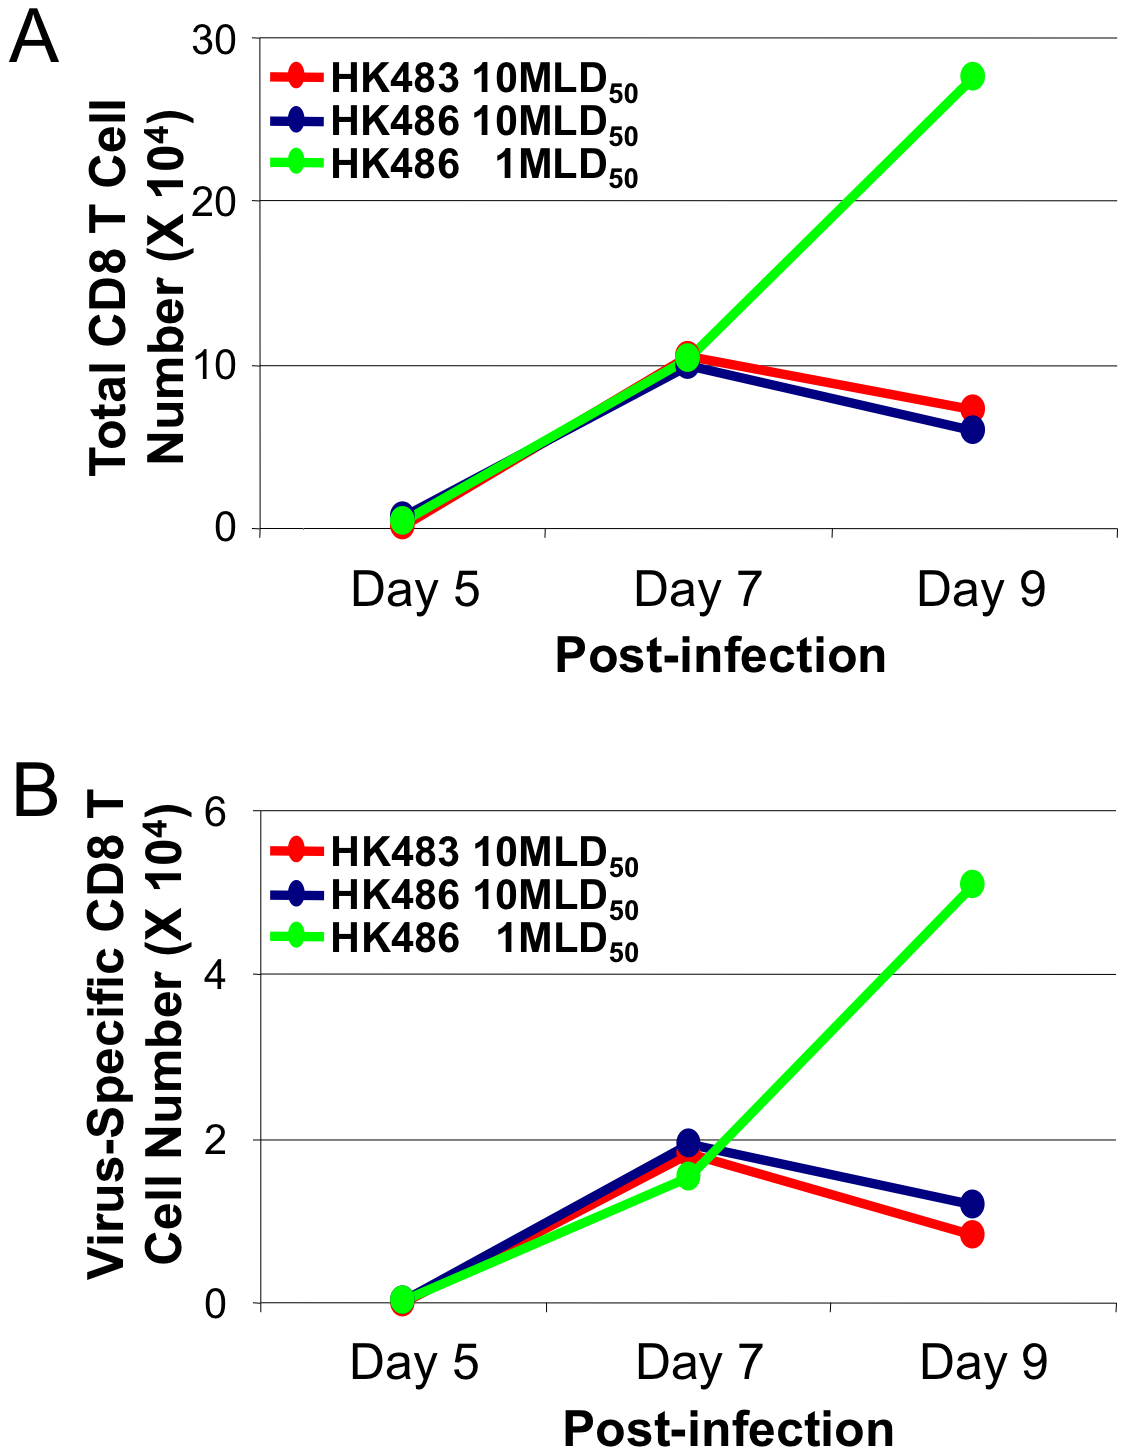 Premature contraction of CD8 T cells in mice infected with lethal dose of highly pathogenic H5N1 influenza viruses.